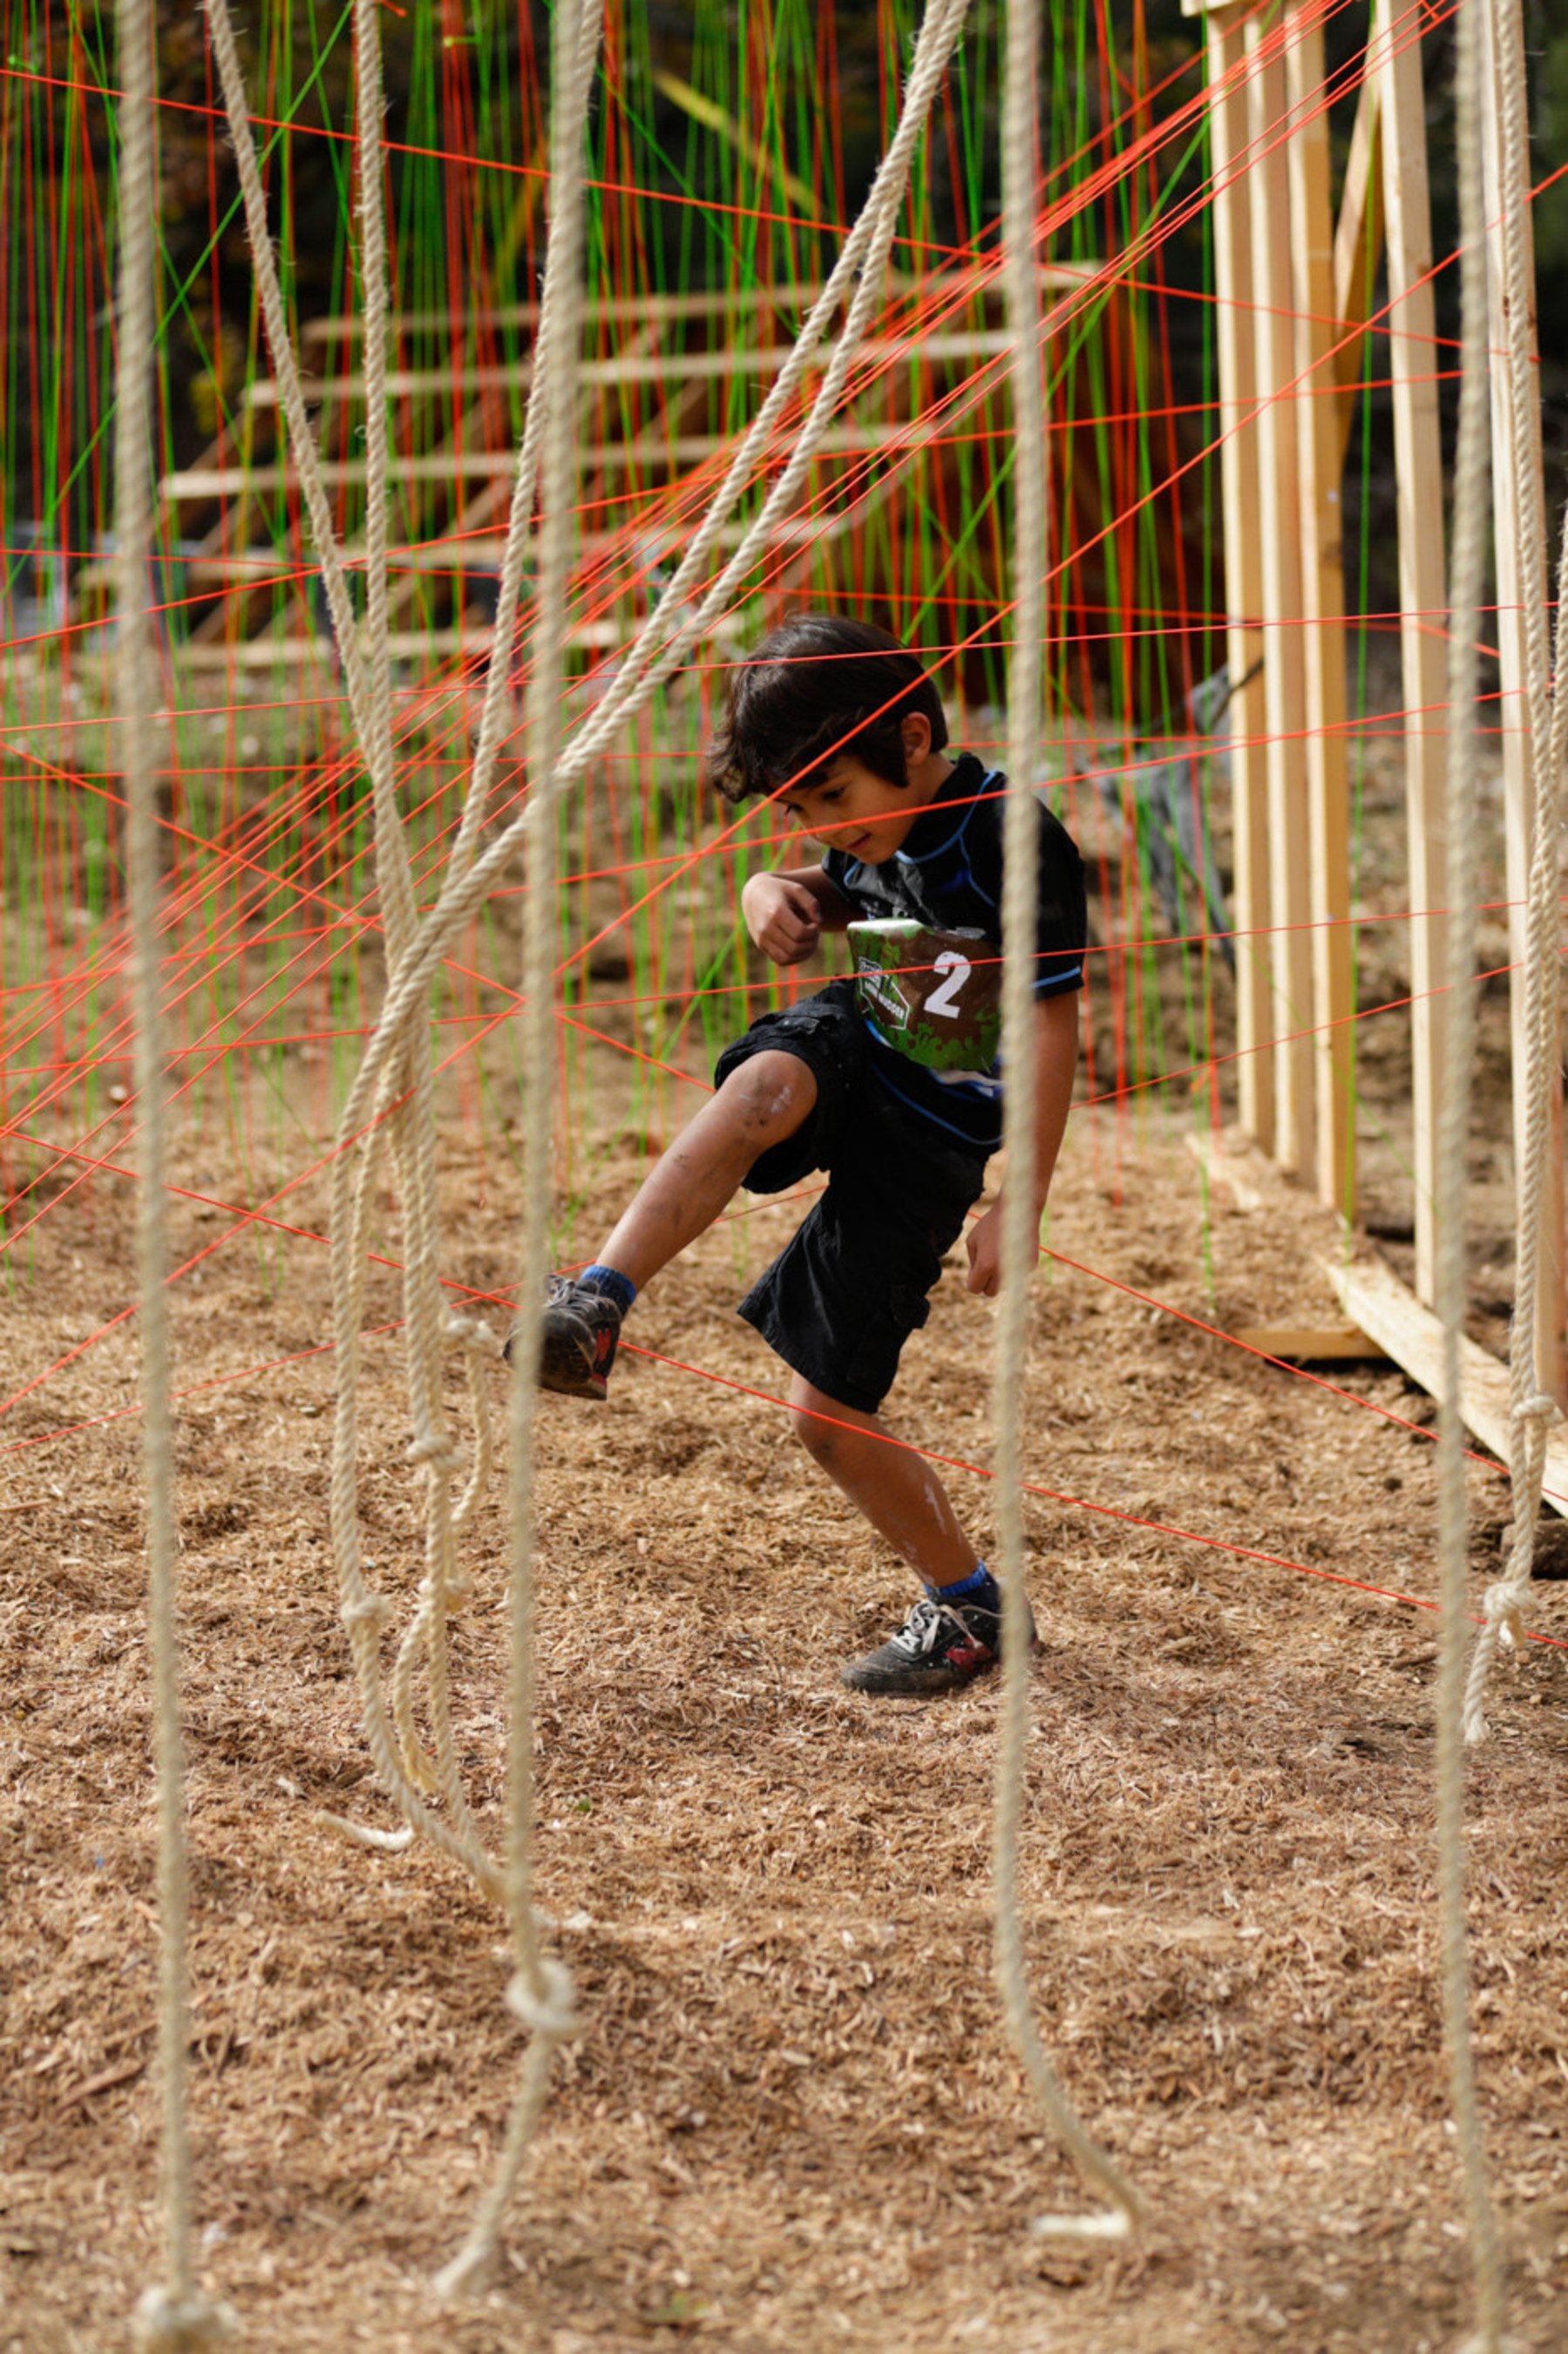 Tough Mudder Inc. is launching a multi-territory partnership with one of the leading international soft drinks Companies, Britvic PLC, to jointly develop a custom event aimed at children aged 7-12.